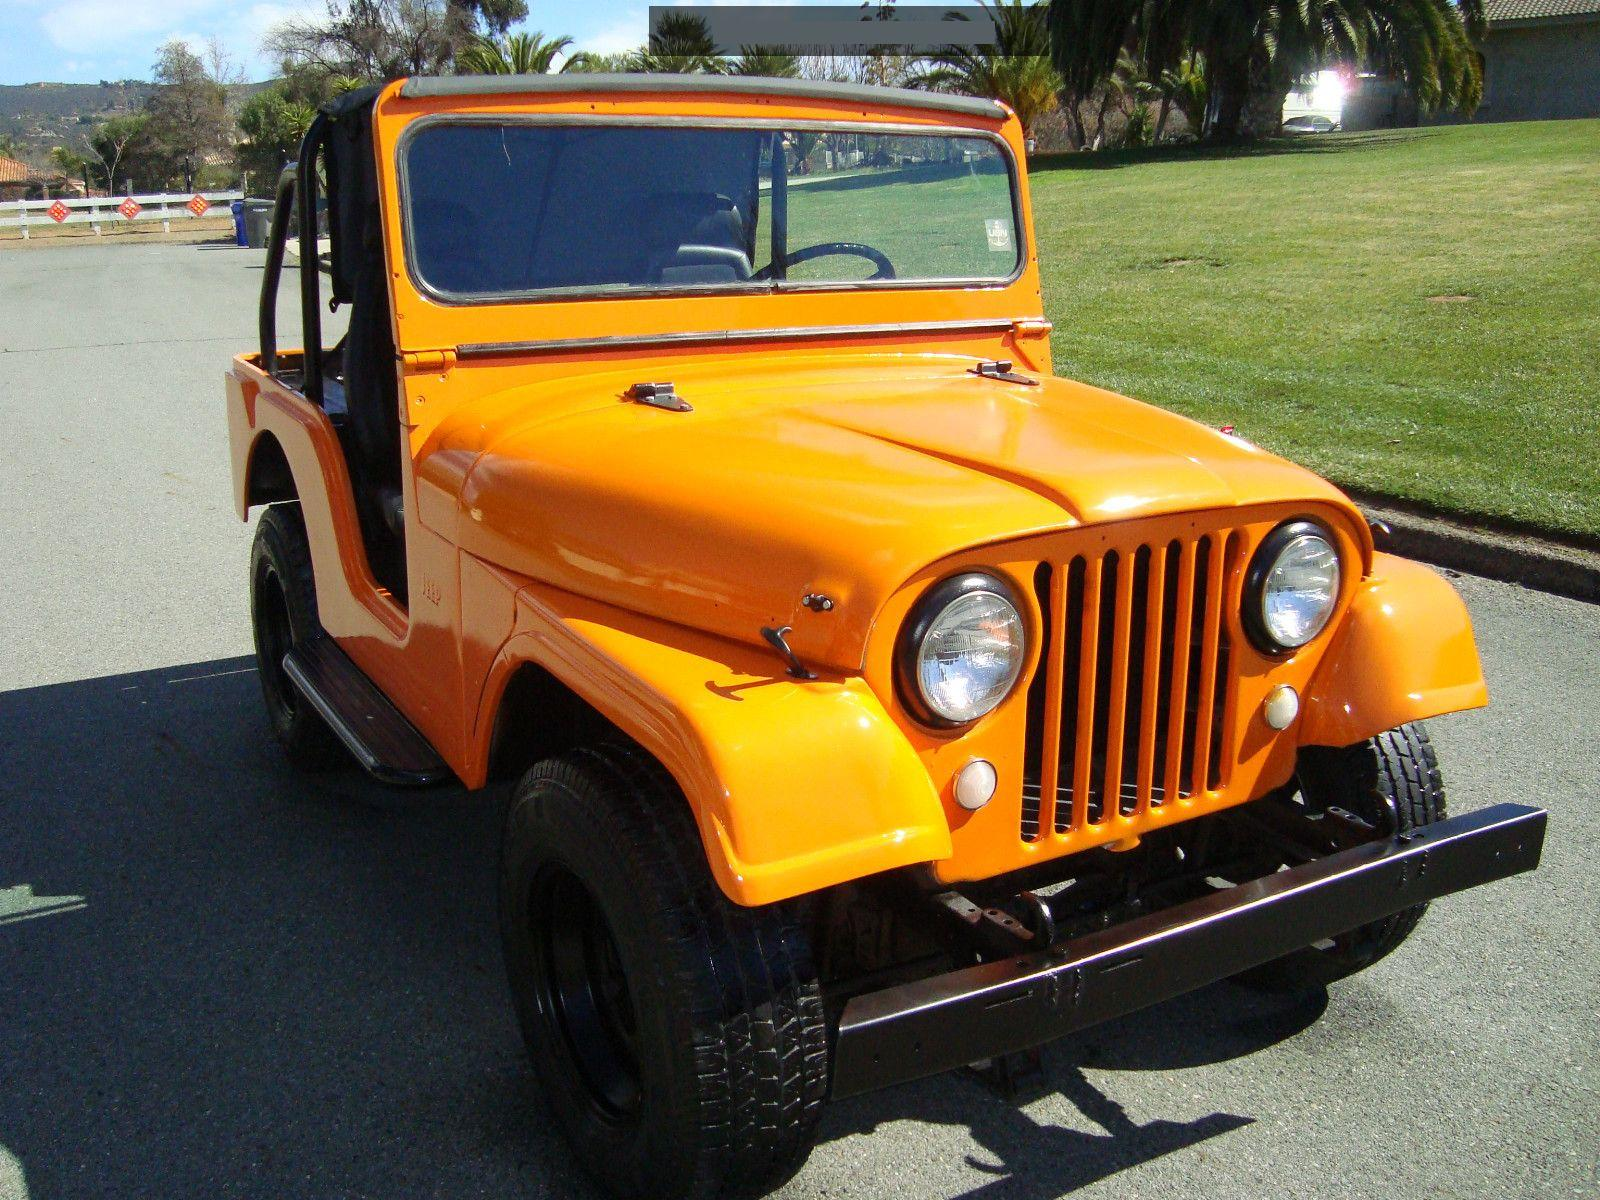 classic_1965_willys_military_jeep_cj5_4x4_sunset_orange_paint_rock_crawler_5_lgw